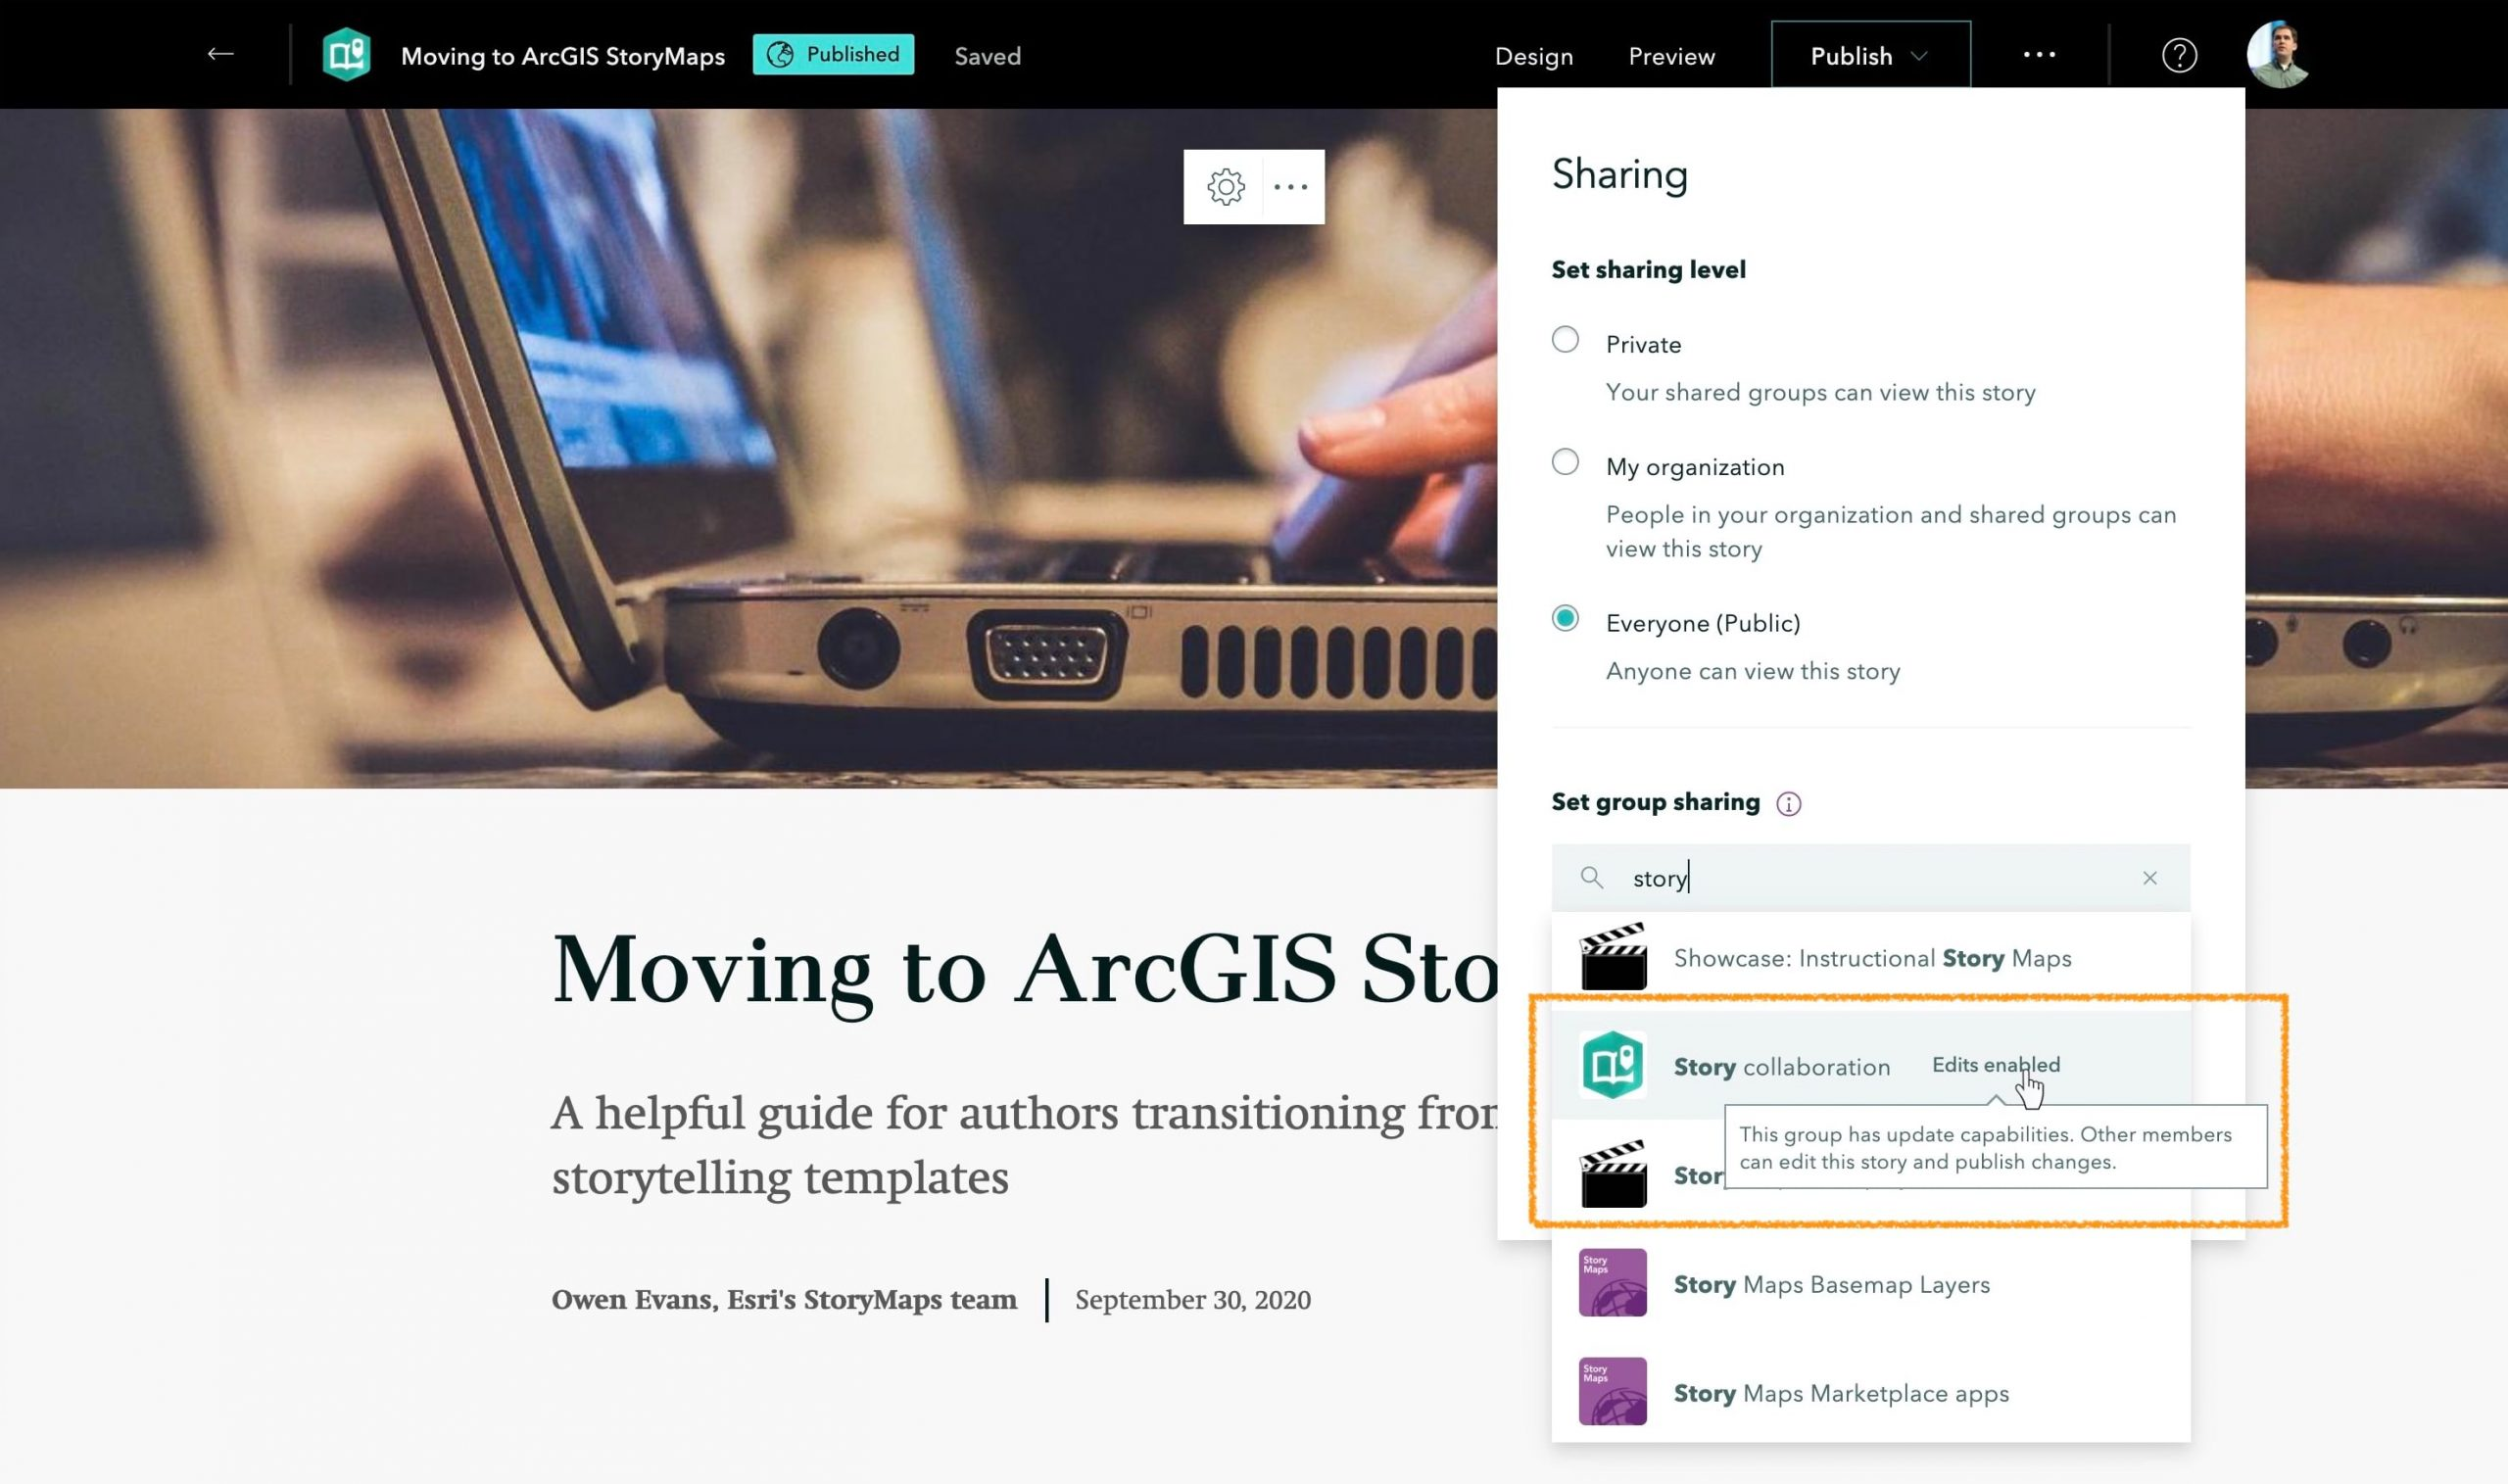 Publishing a story to a shared update group